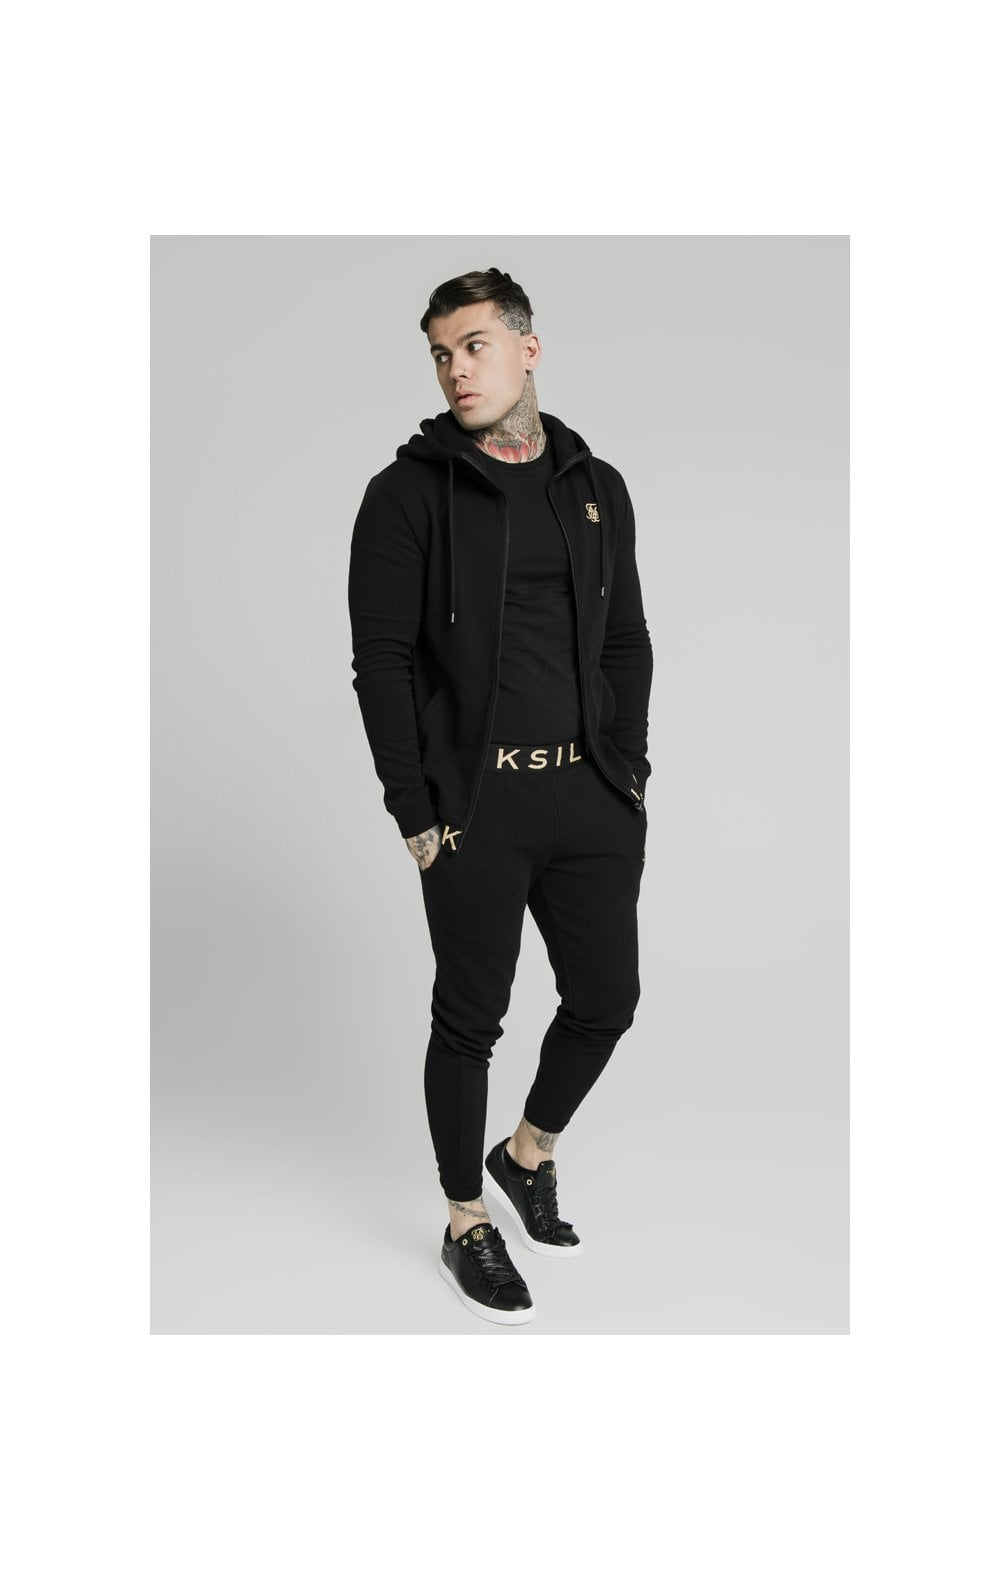 SikSilk Elastic Jacquard Pants - Black (4)